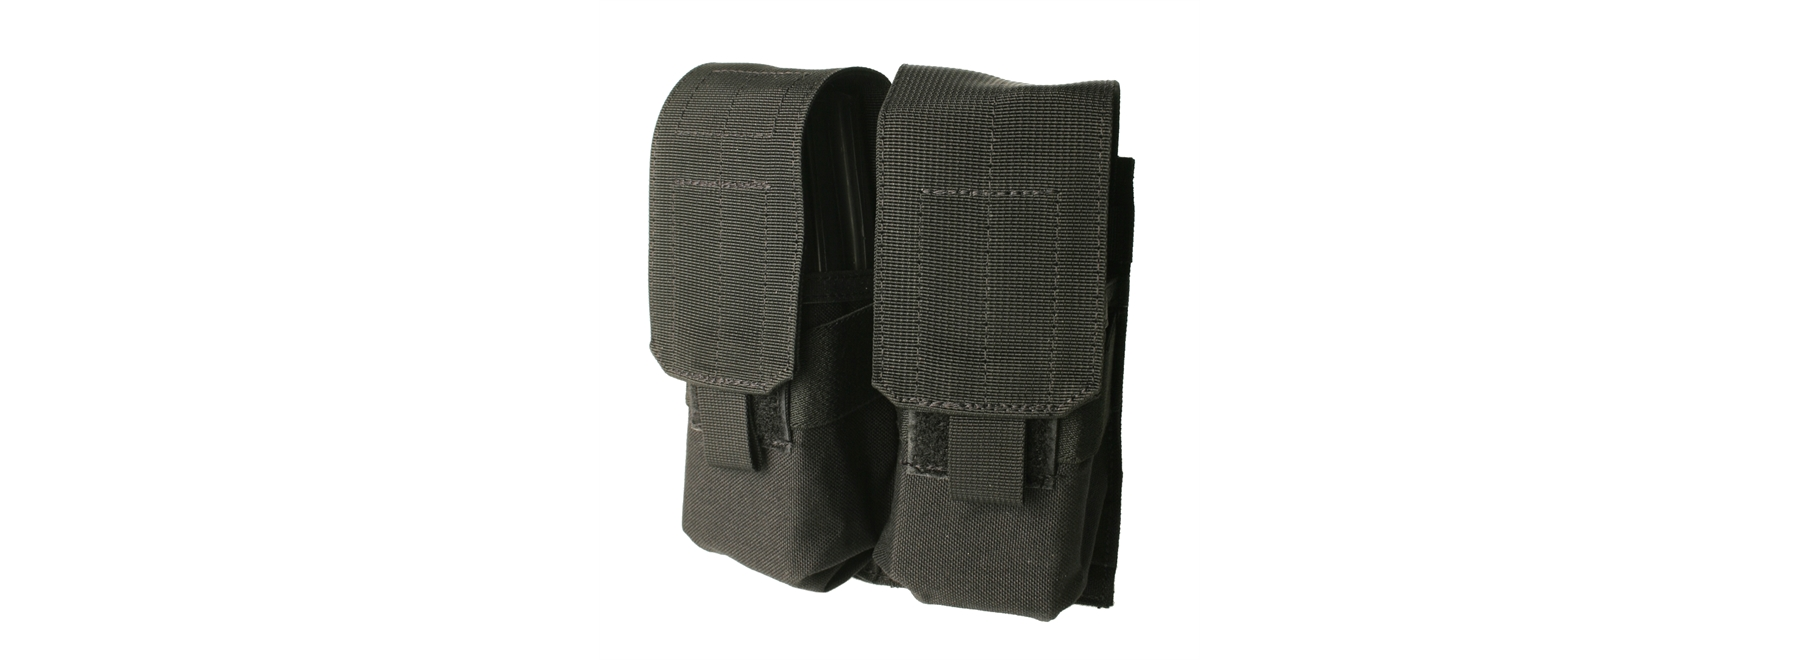 S.T.R.I.K.E.™ Double M4 Mag Pouch Holds 4